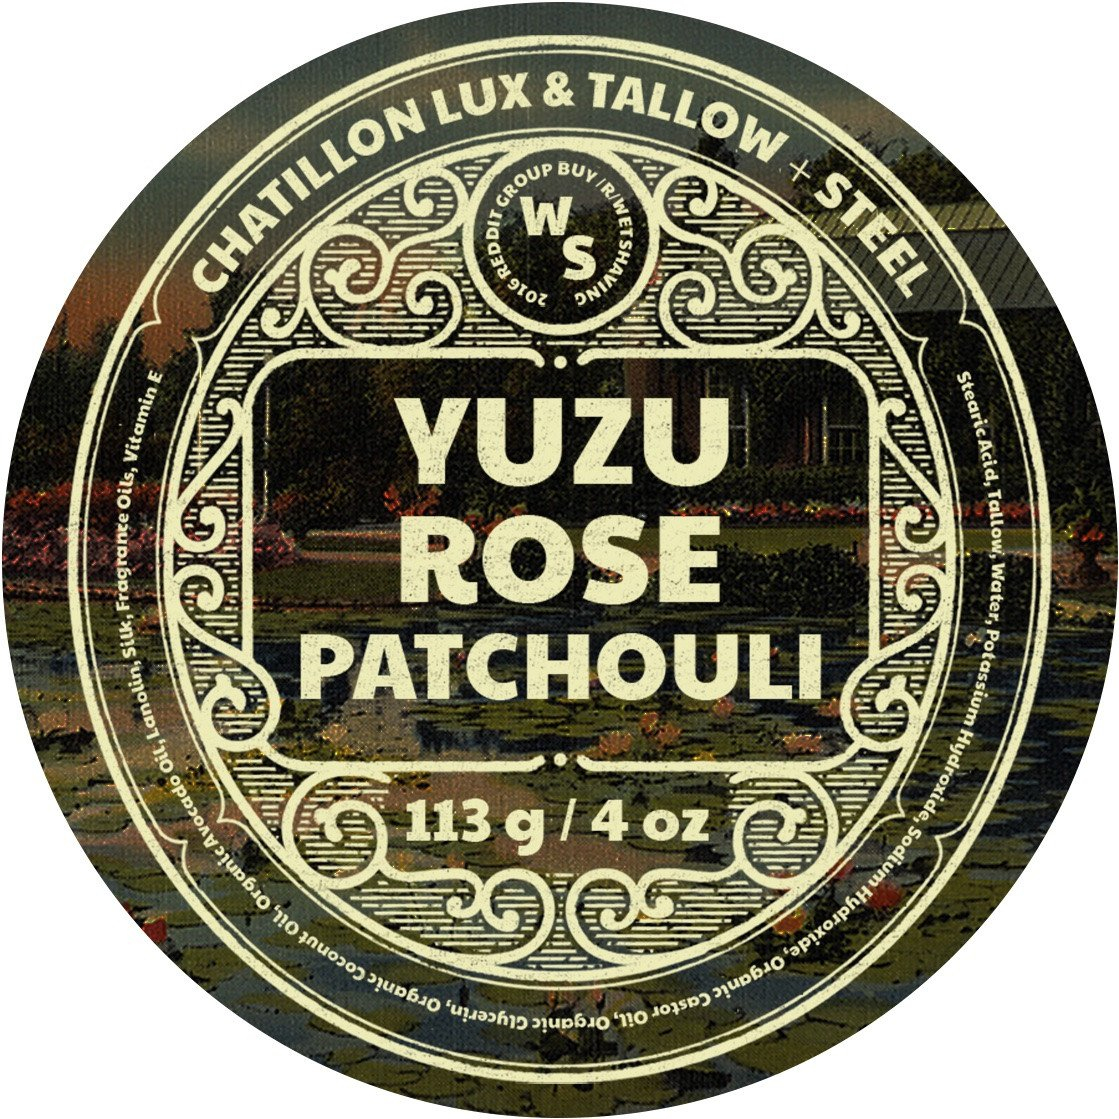 Chatillon Lux/Tallow + Steel - Yuzu/Rose/Patchouli - Soap image